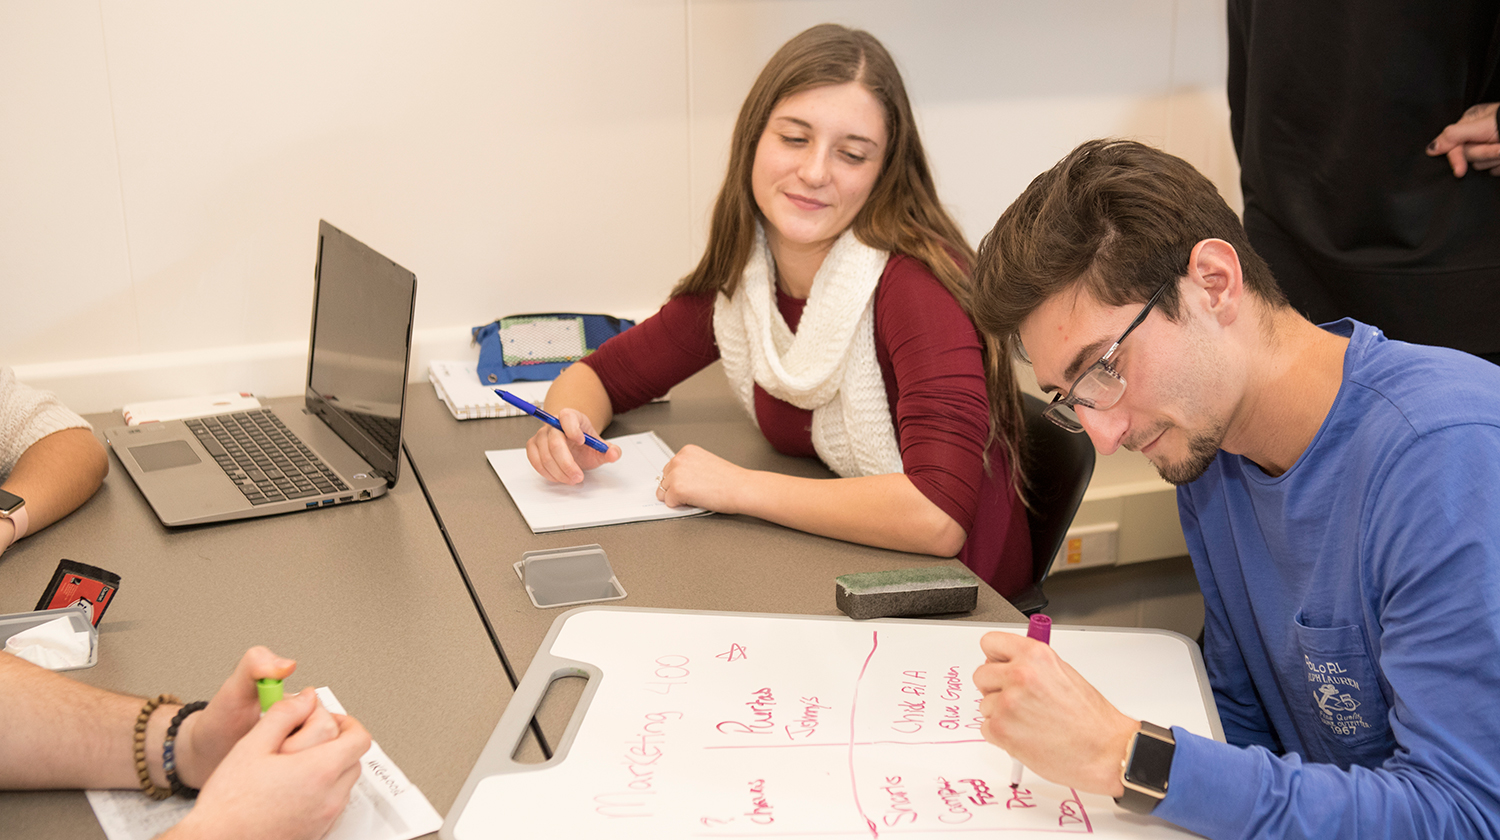 A group of students working together in a classroom.